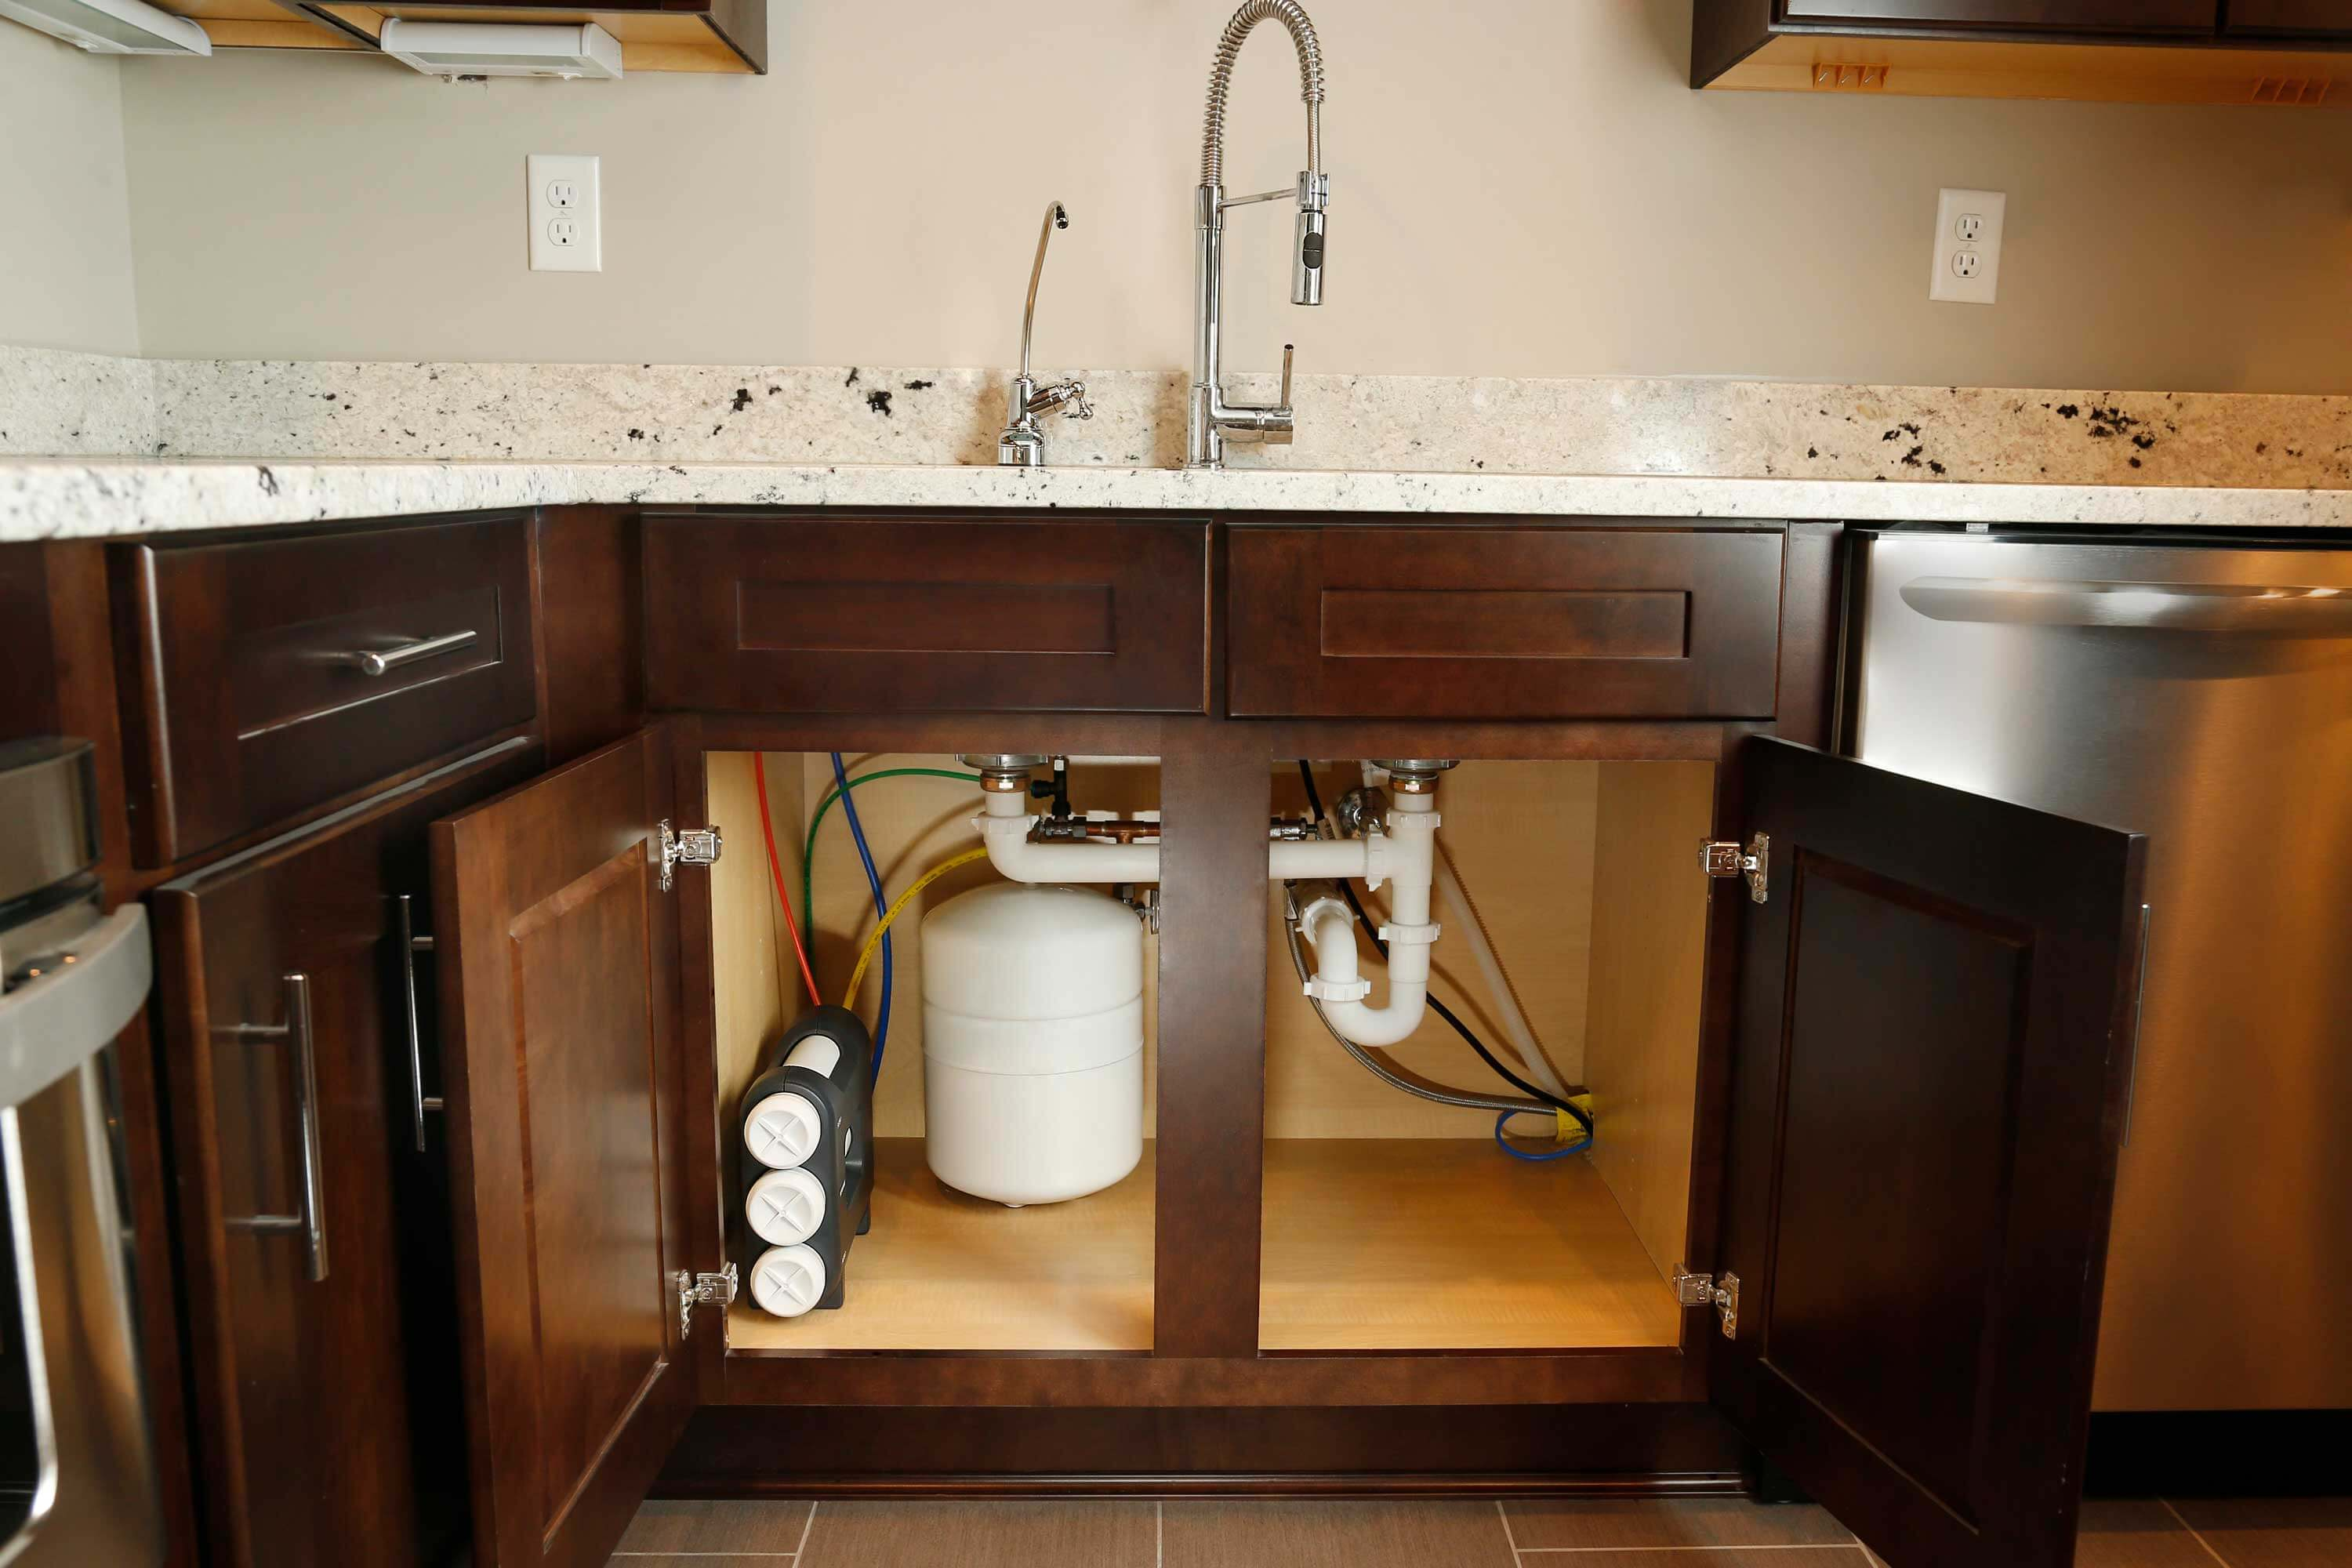 Water filter in the kitchen